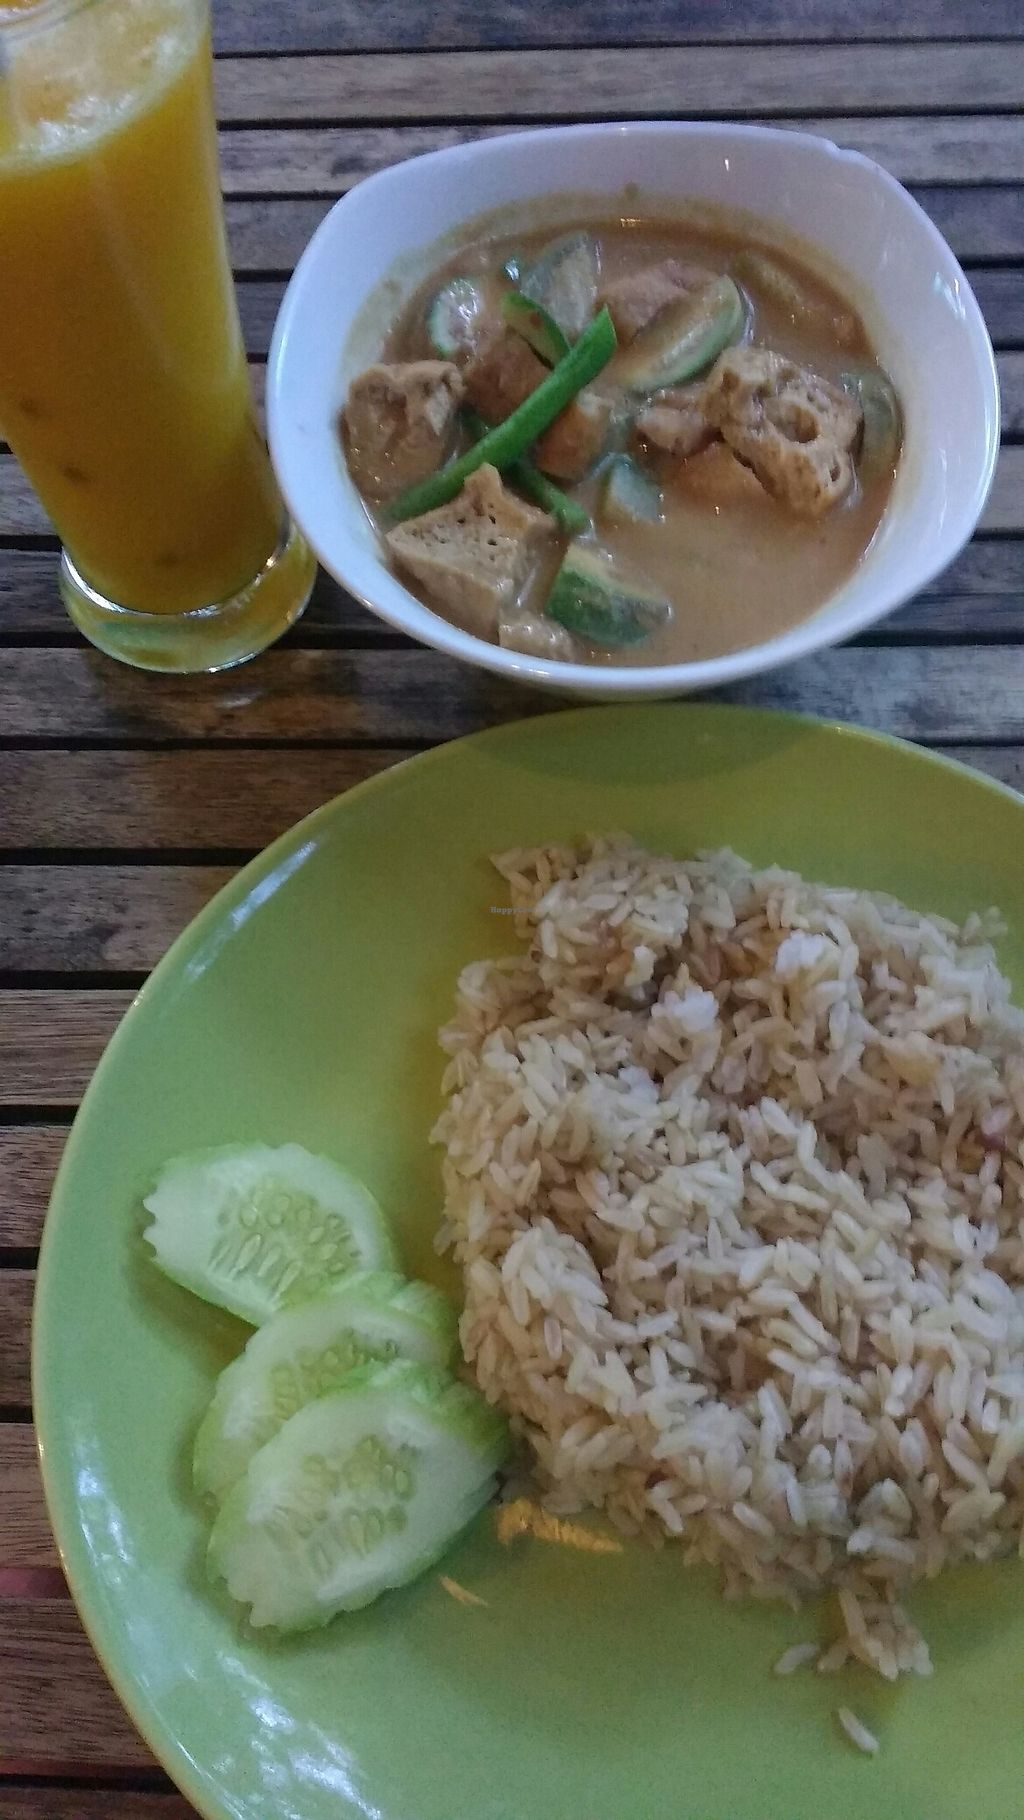 "Photo of The Vegetarian  by <a href=""/members/profile/Anouk1121"">Anouk1121</a> <br/>khmer curry! <br/> December 18, 2017  - <a href='/contact/abuse/image/23003/336843'>Report</a>"